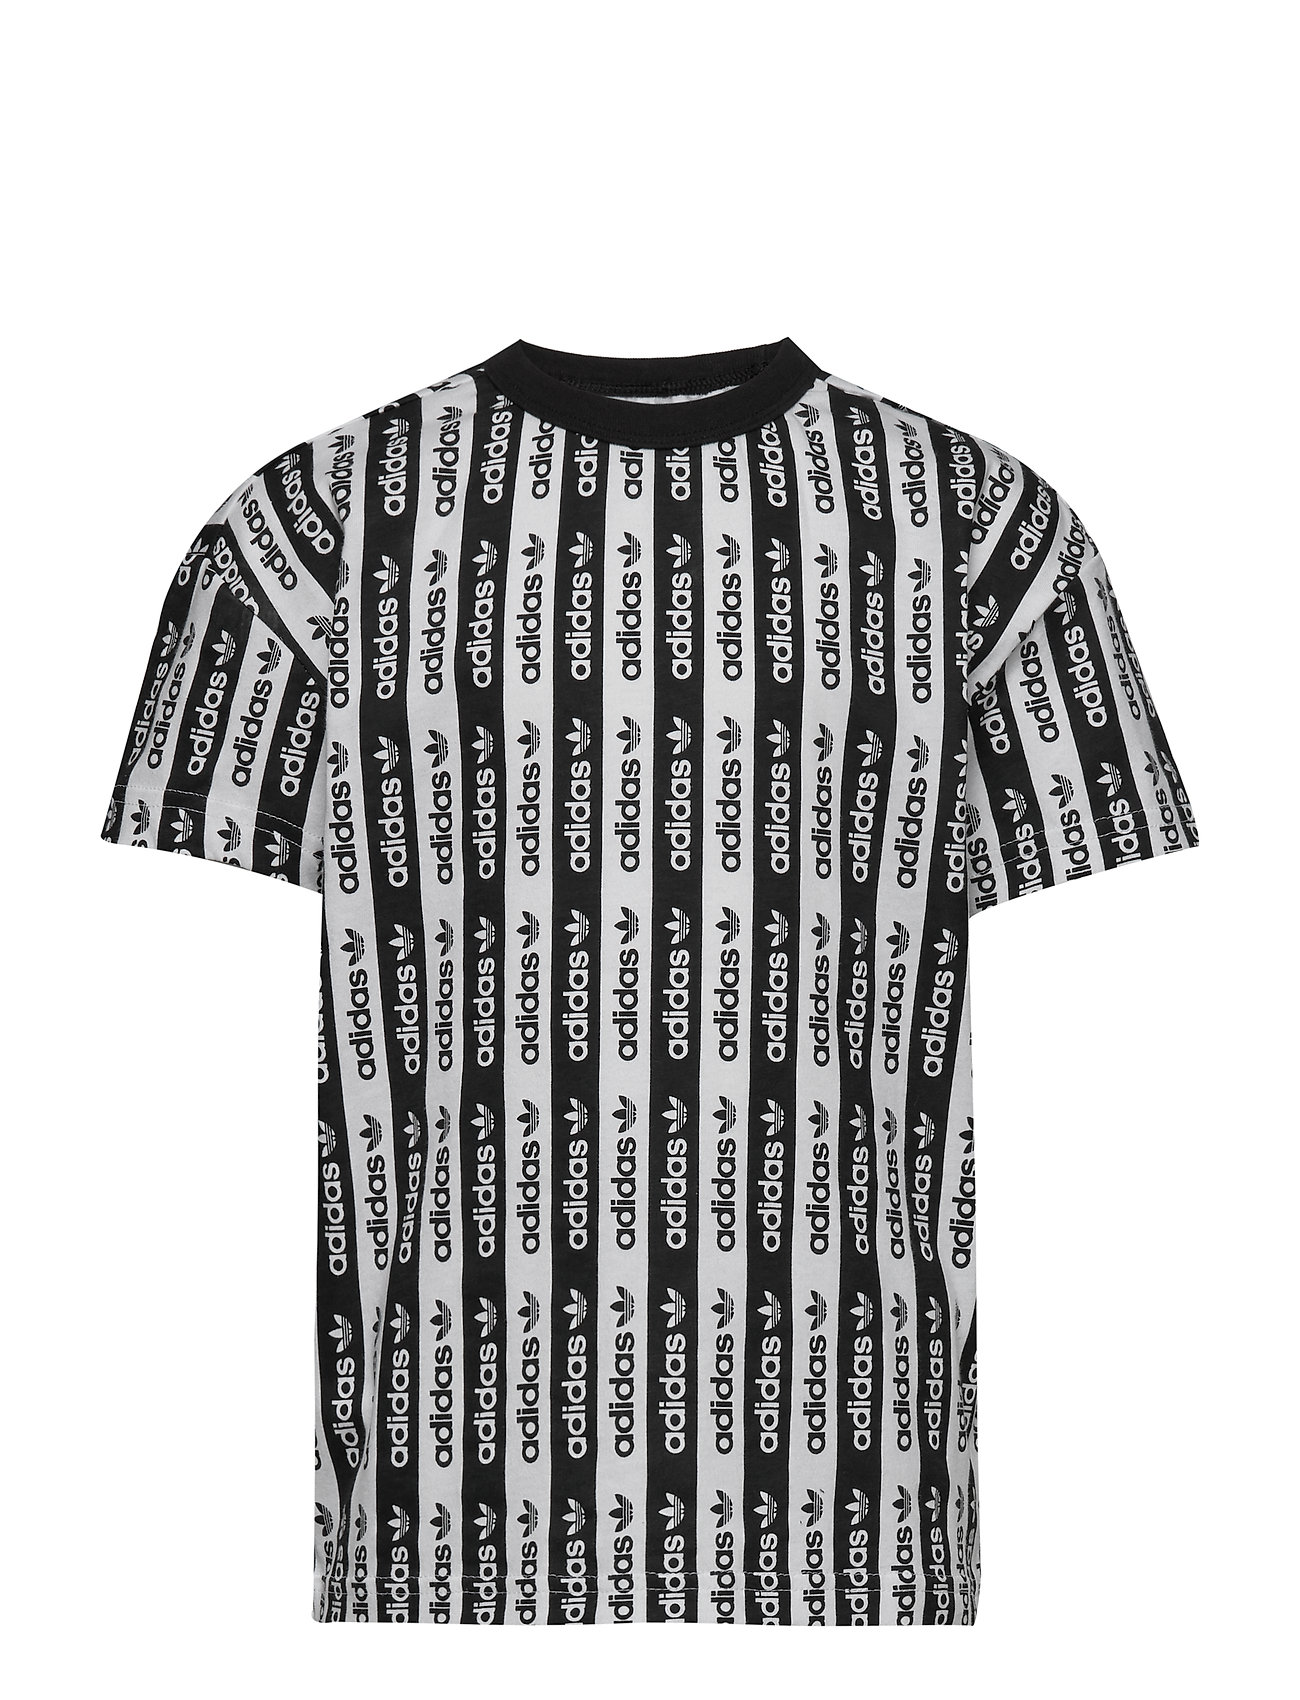 adidas Originals TEE AOP - WHITE/BLACK